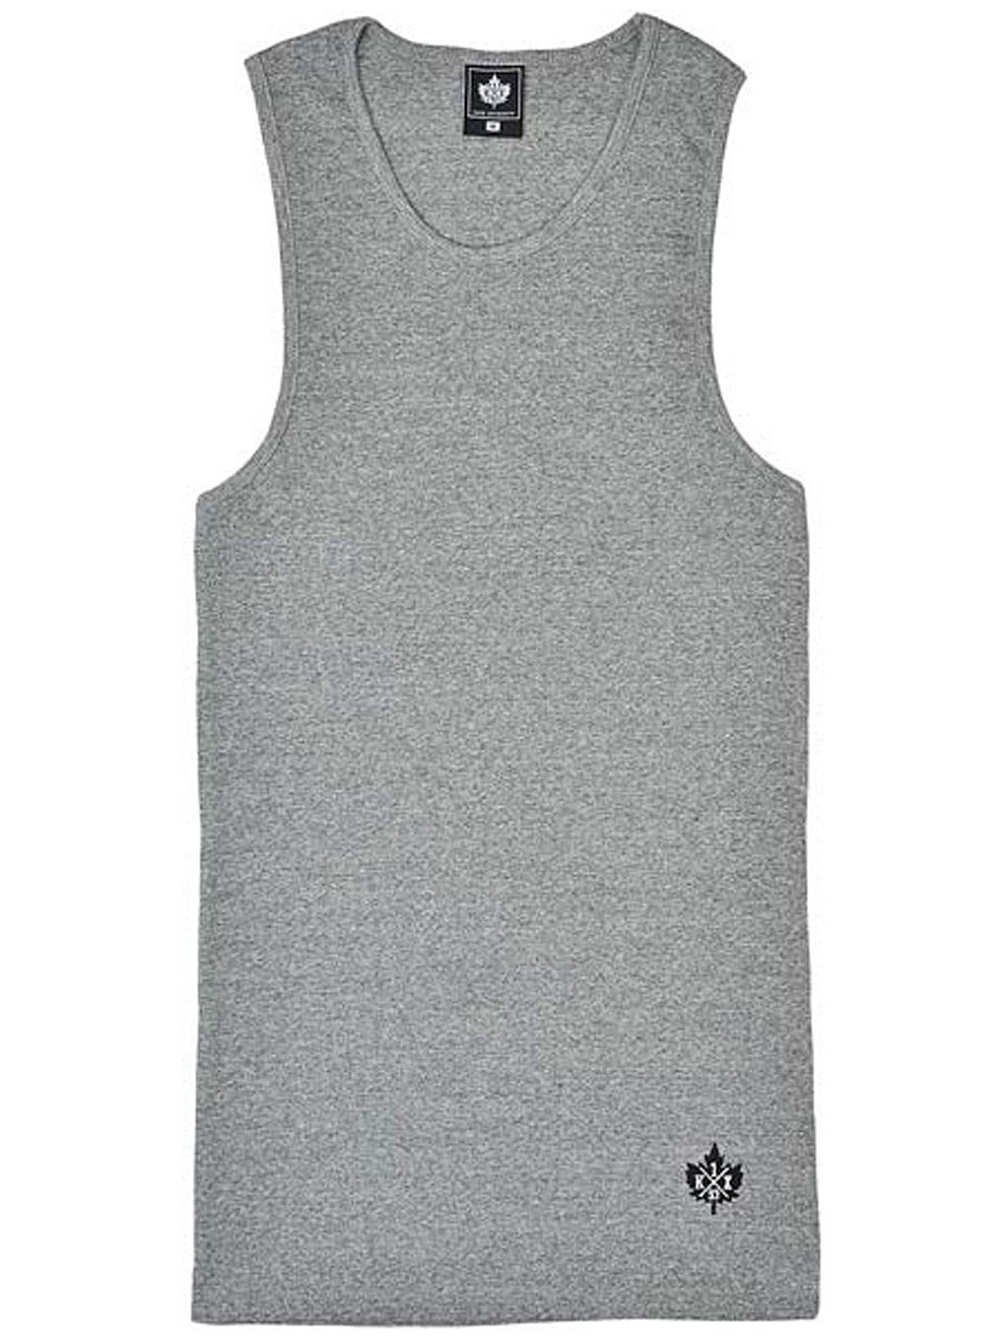 Authentic Wifebeater